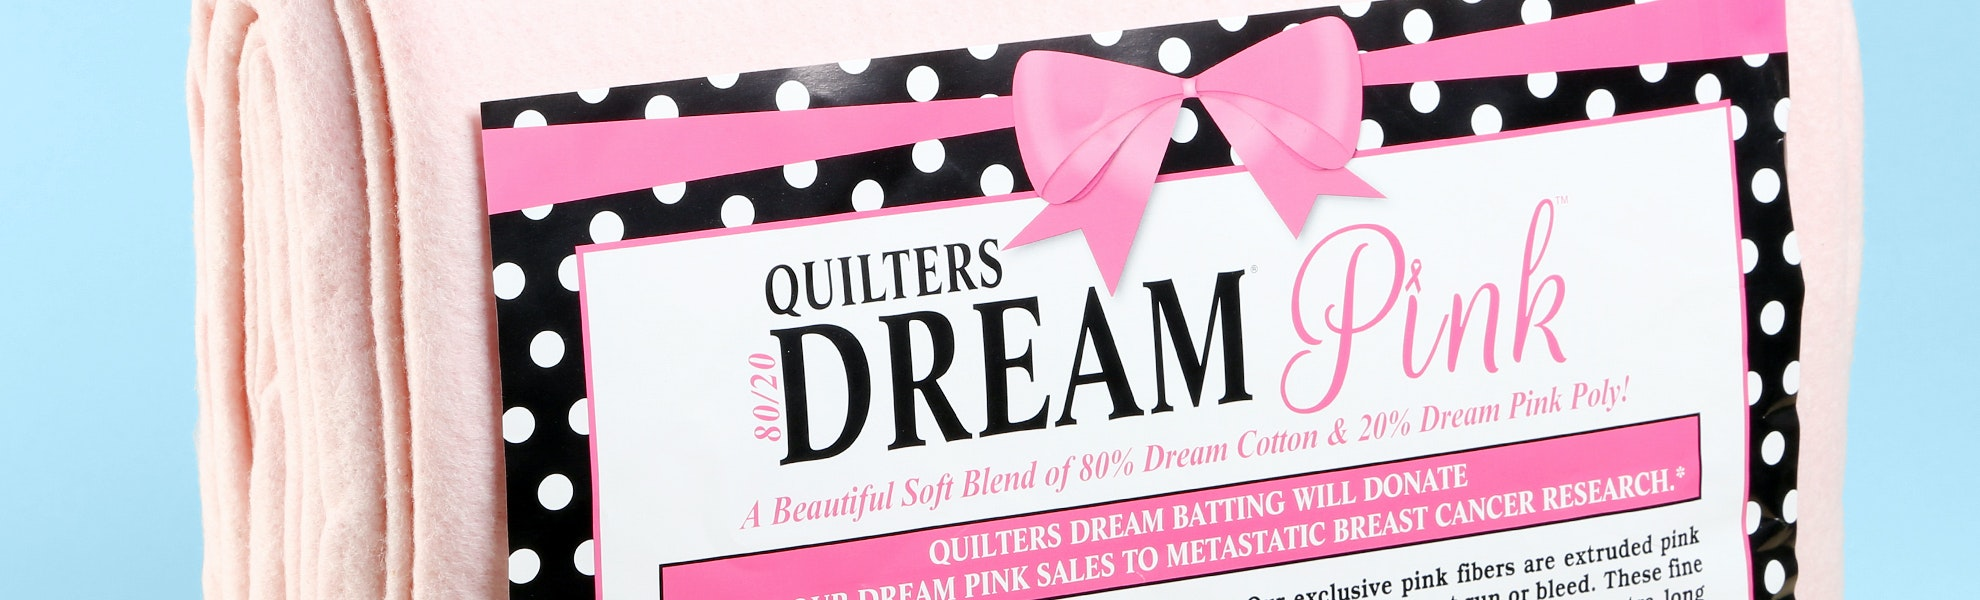 Quilters Dream Pink Batting